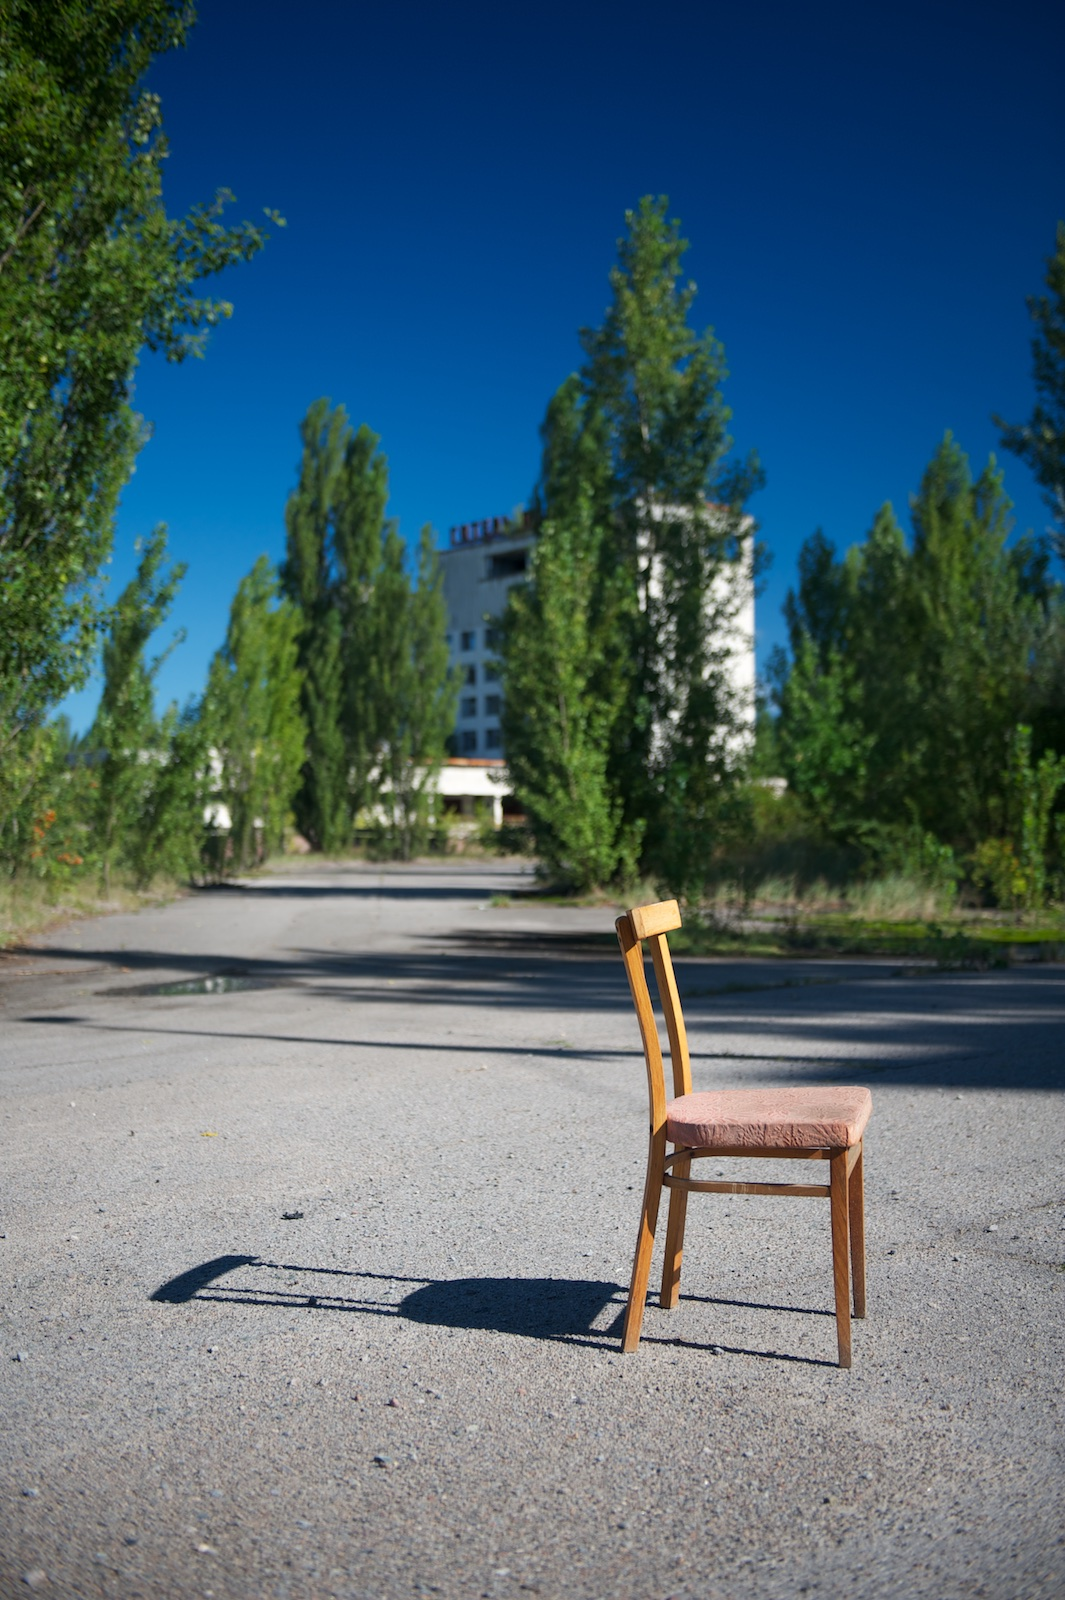 A solitary wooden chair stands in the middle of what looks like a tarmac square fringed with trees